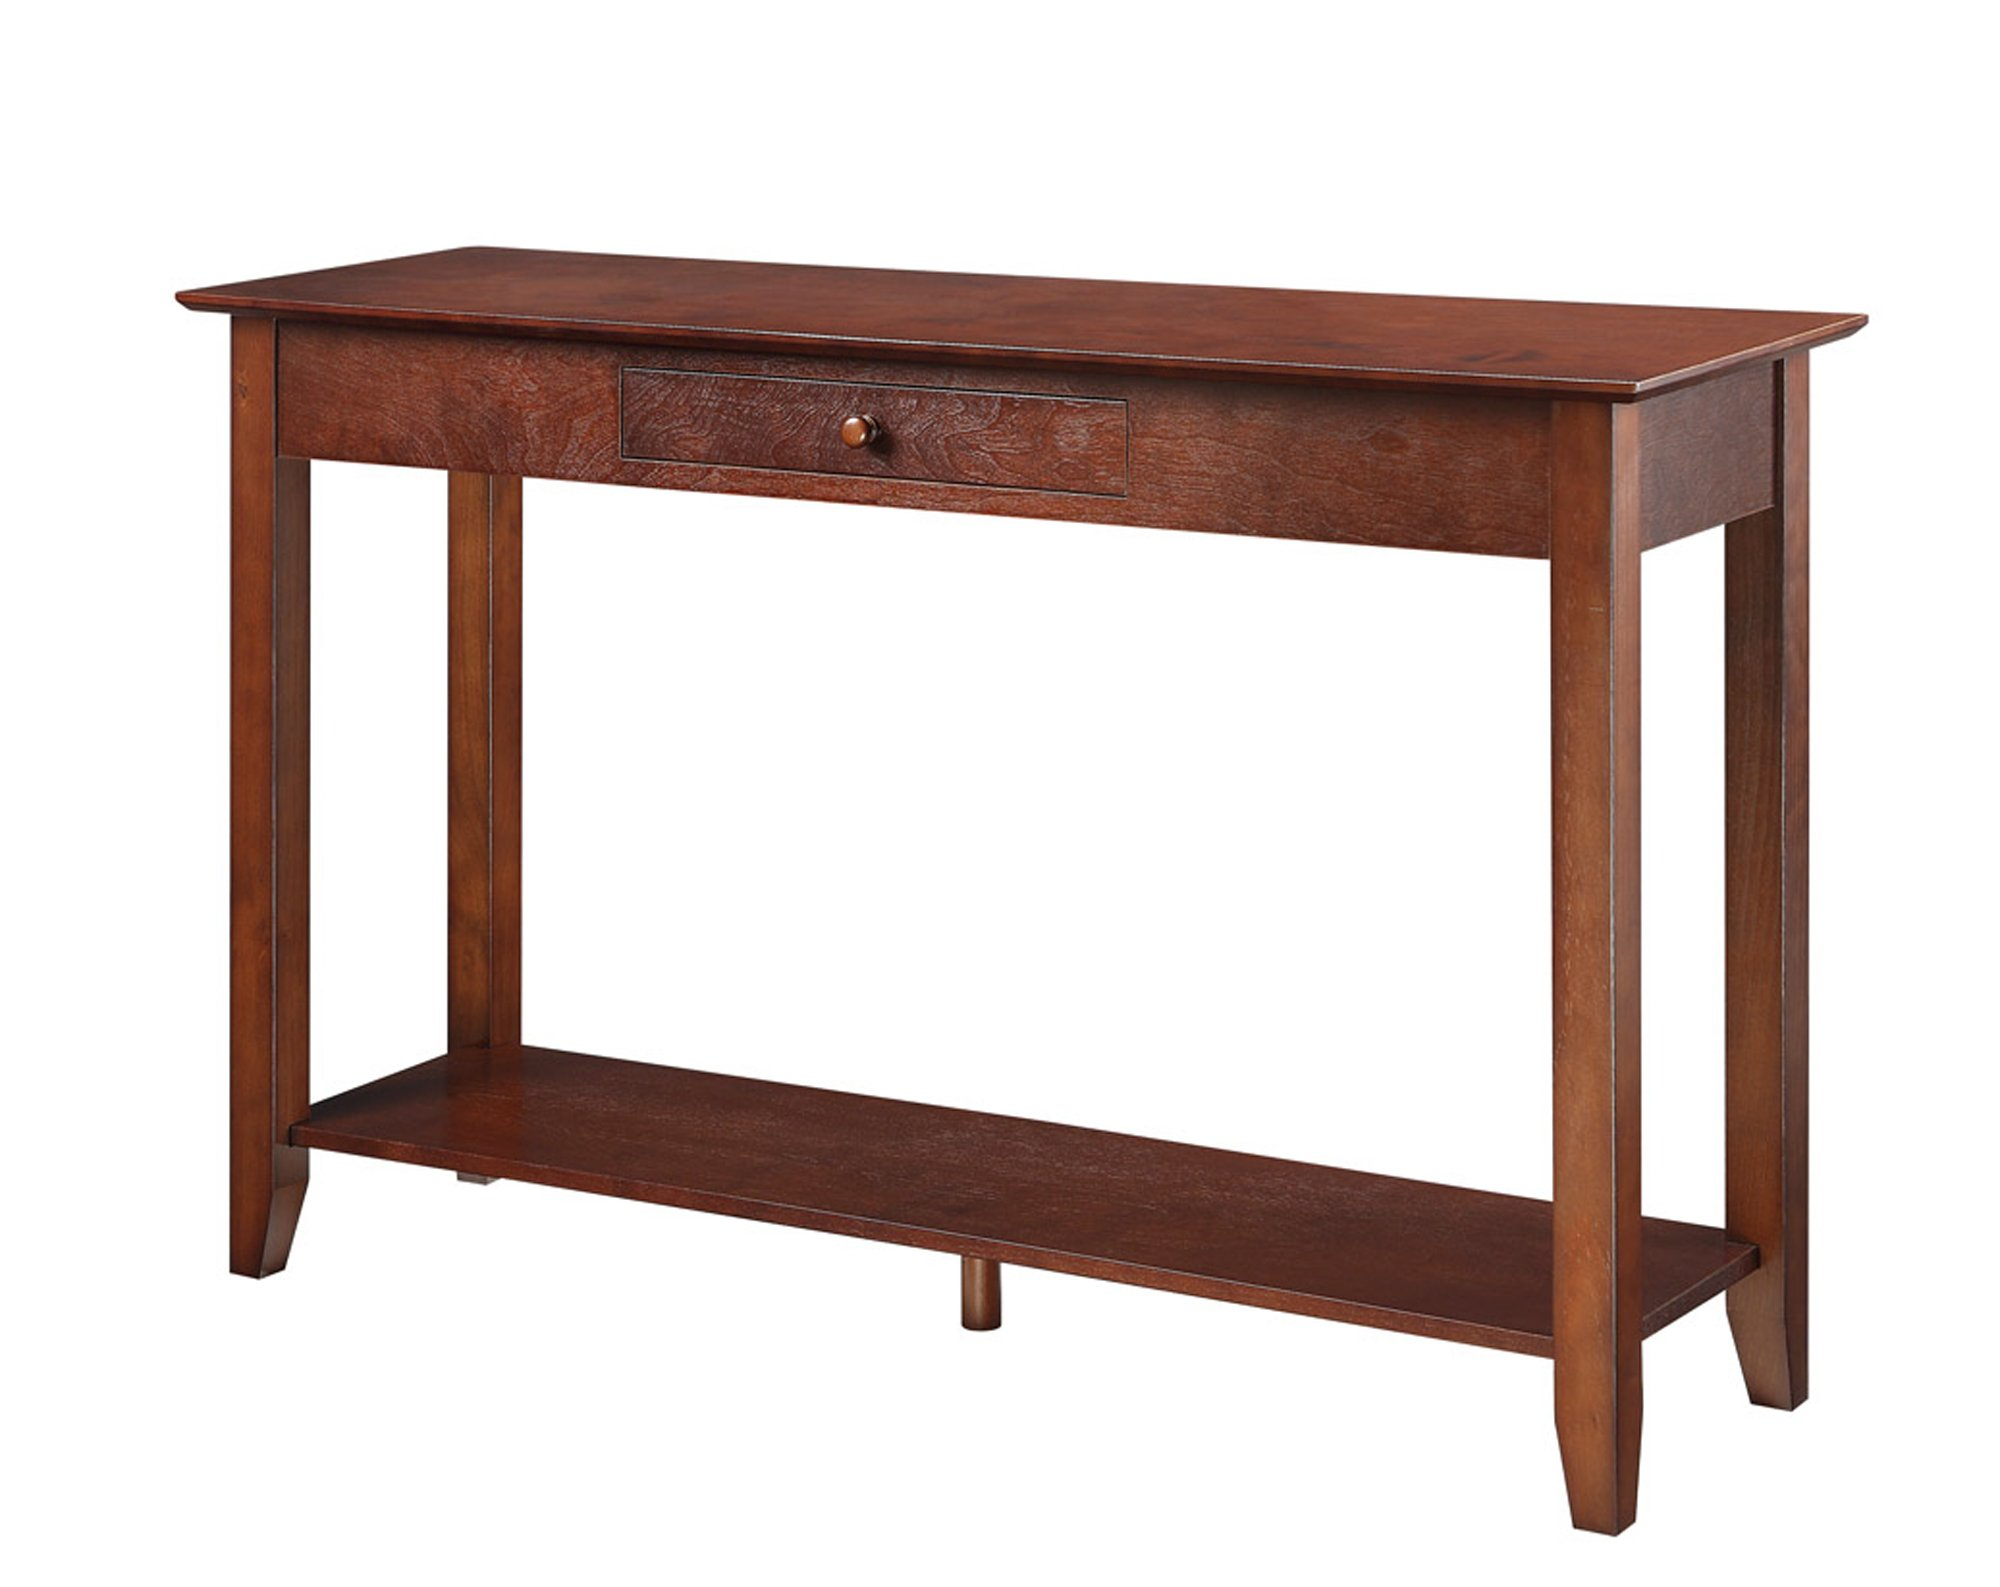 Convenience Concepts American Heritage Console Table with Drawer and Shelf, Espresso